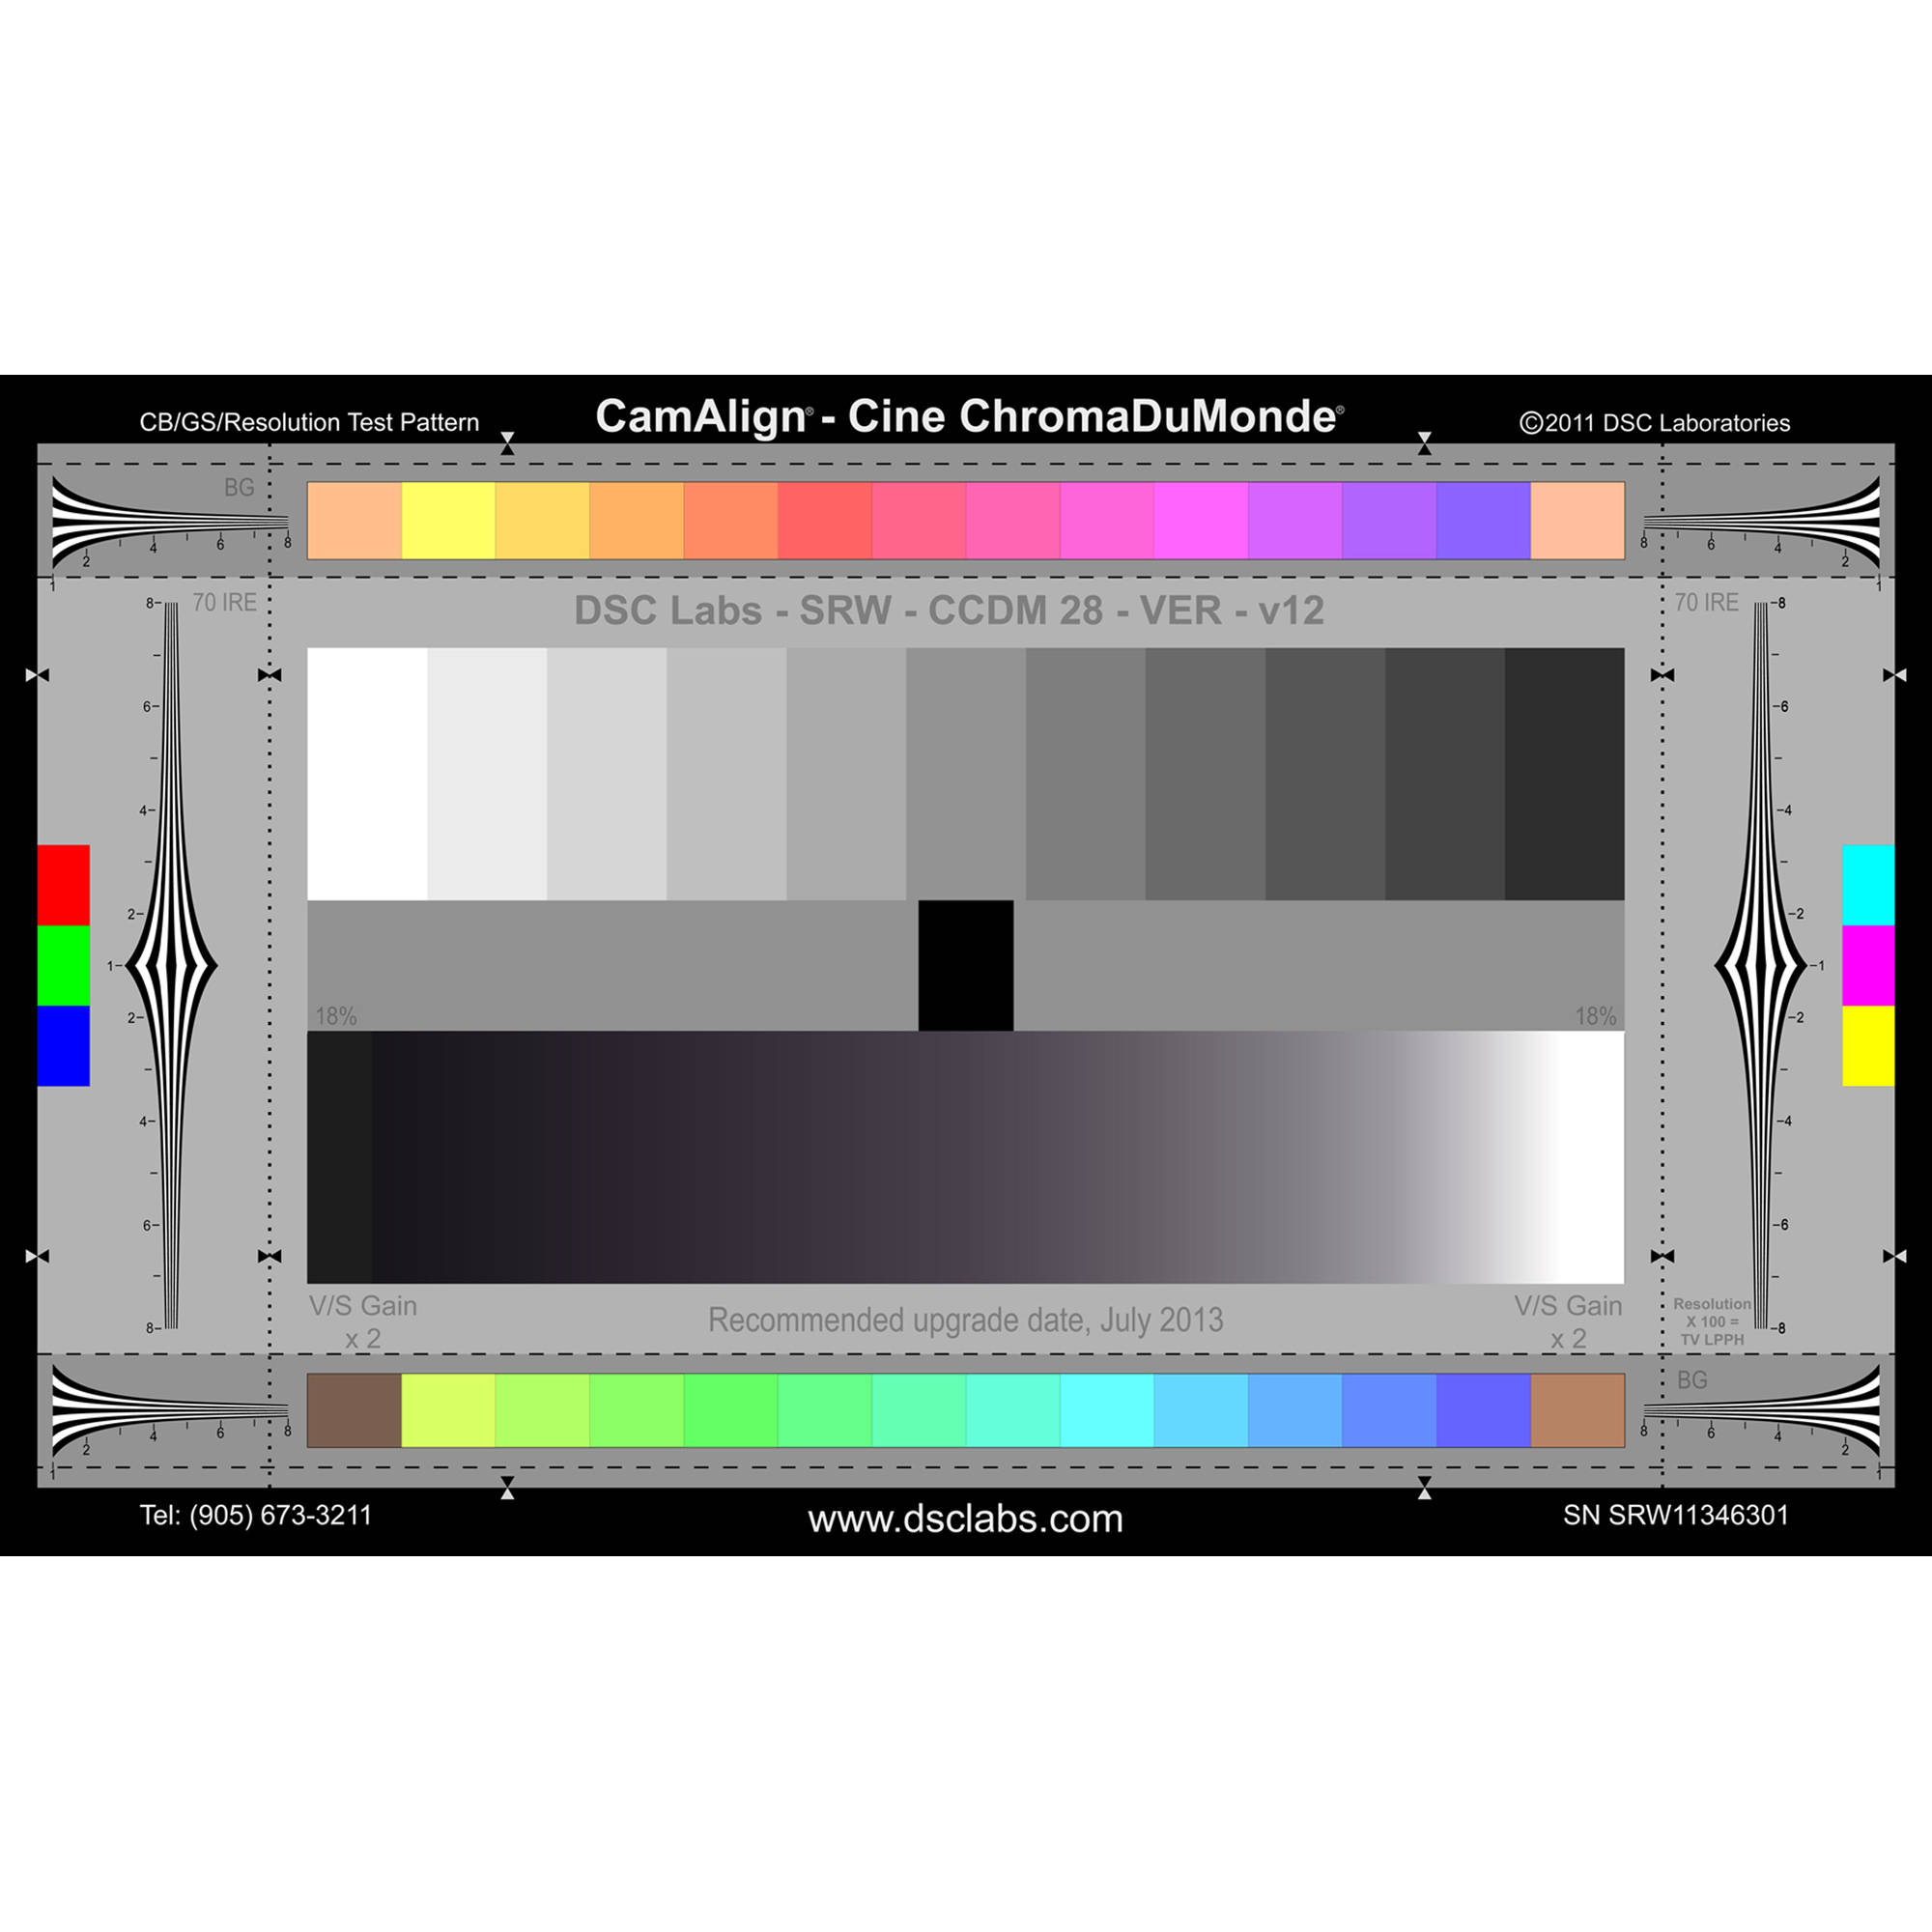 dsc labs the cine chromadumonde srw camera test chart ccdms. Black Bedroom Furniture Sets. Home Design Ideas